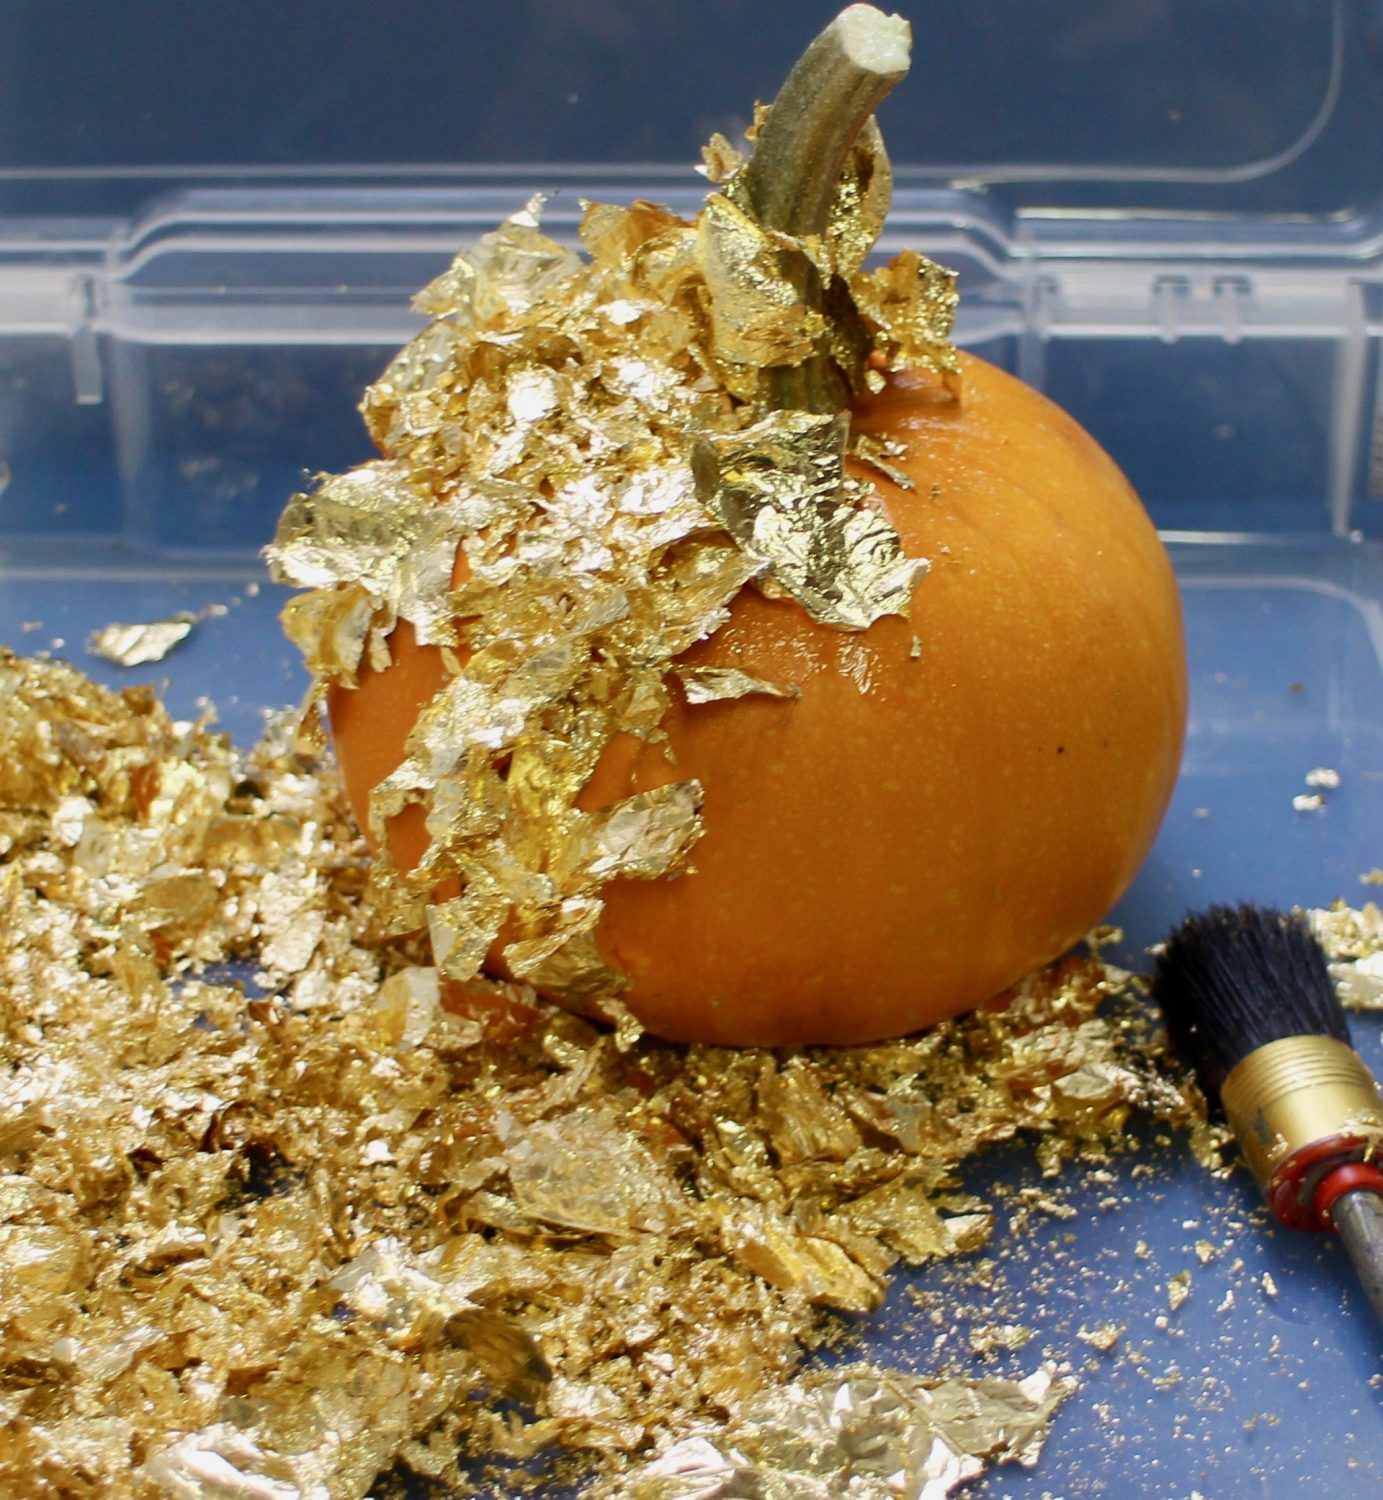 Apply gold leaf to dry adhesive @mariebrowning #tombowusa #autumndecor